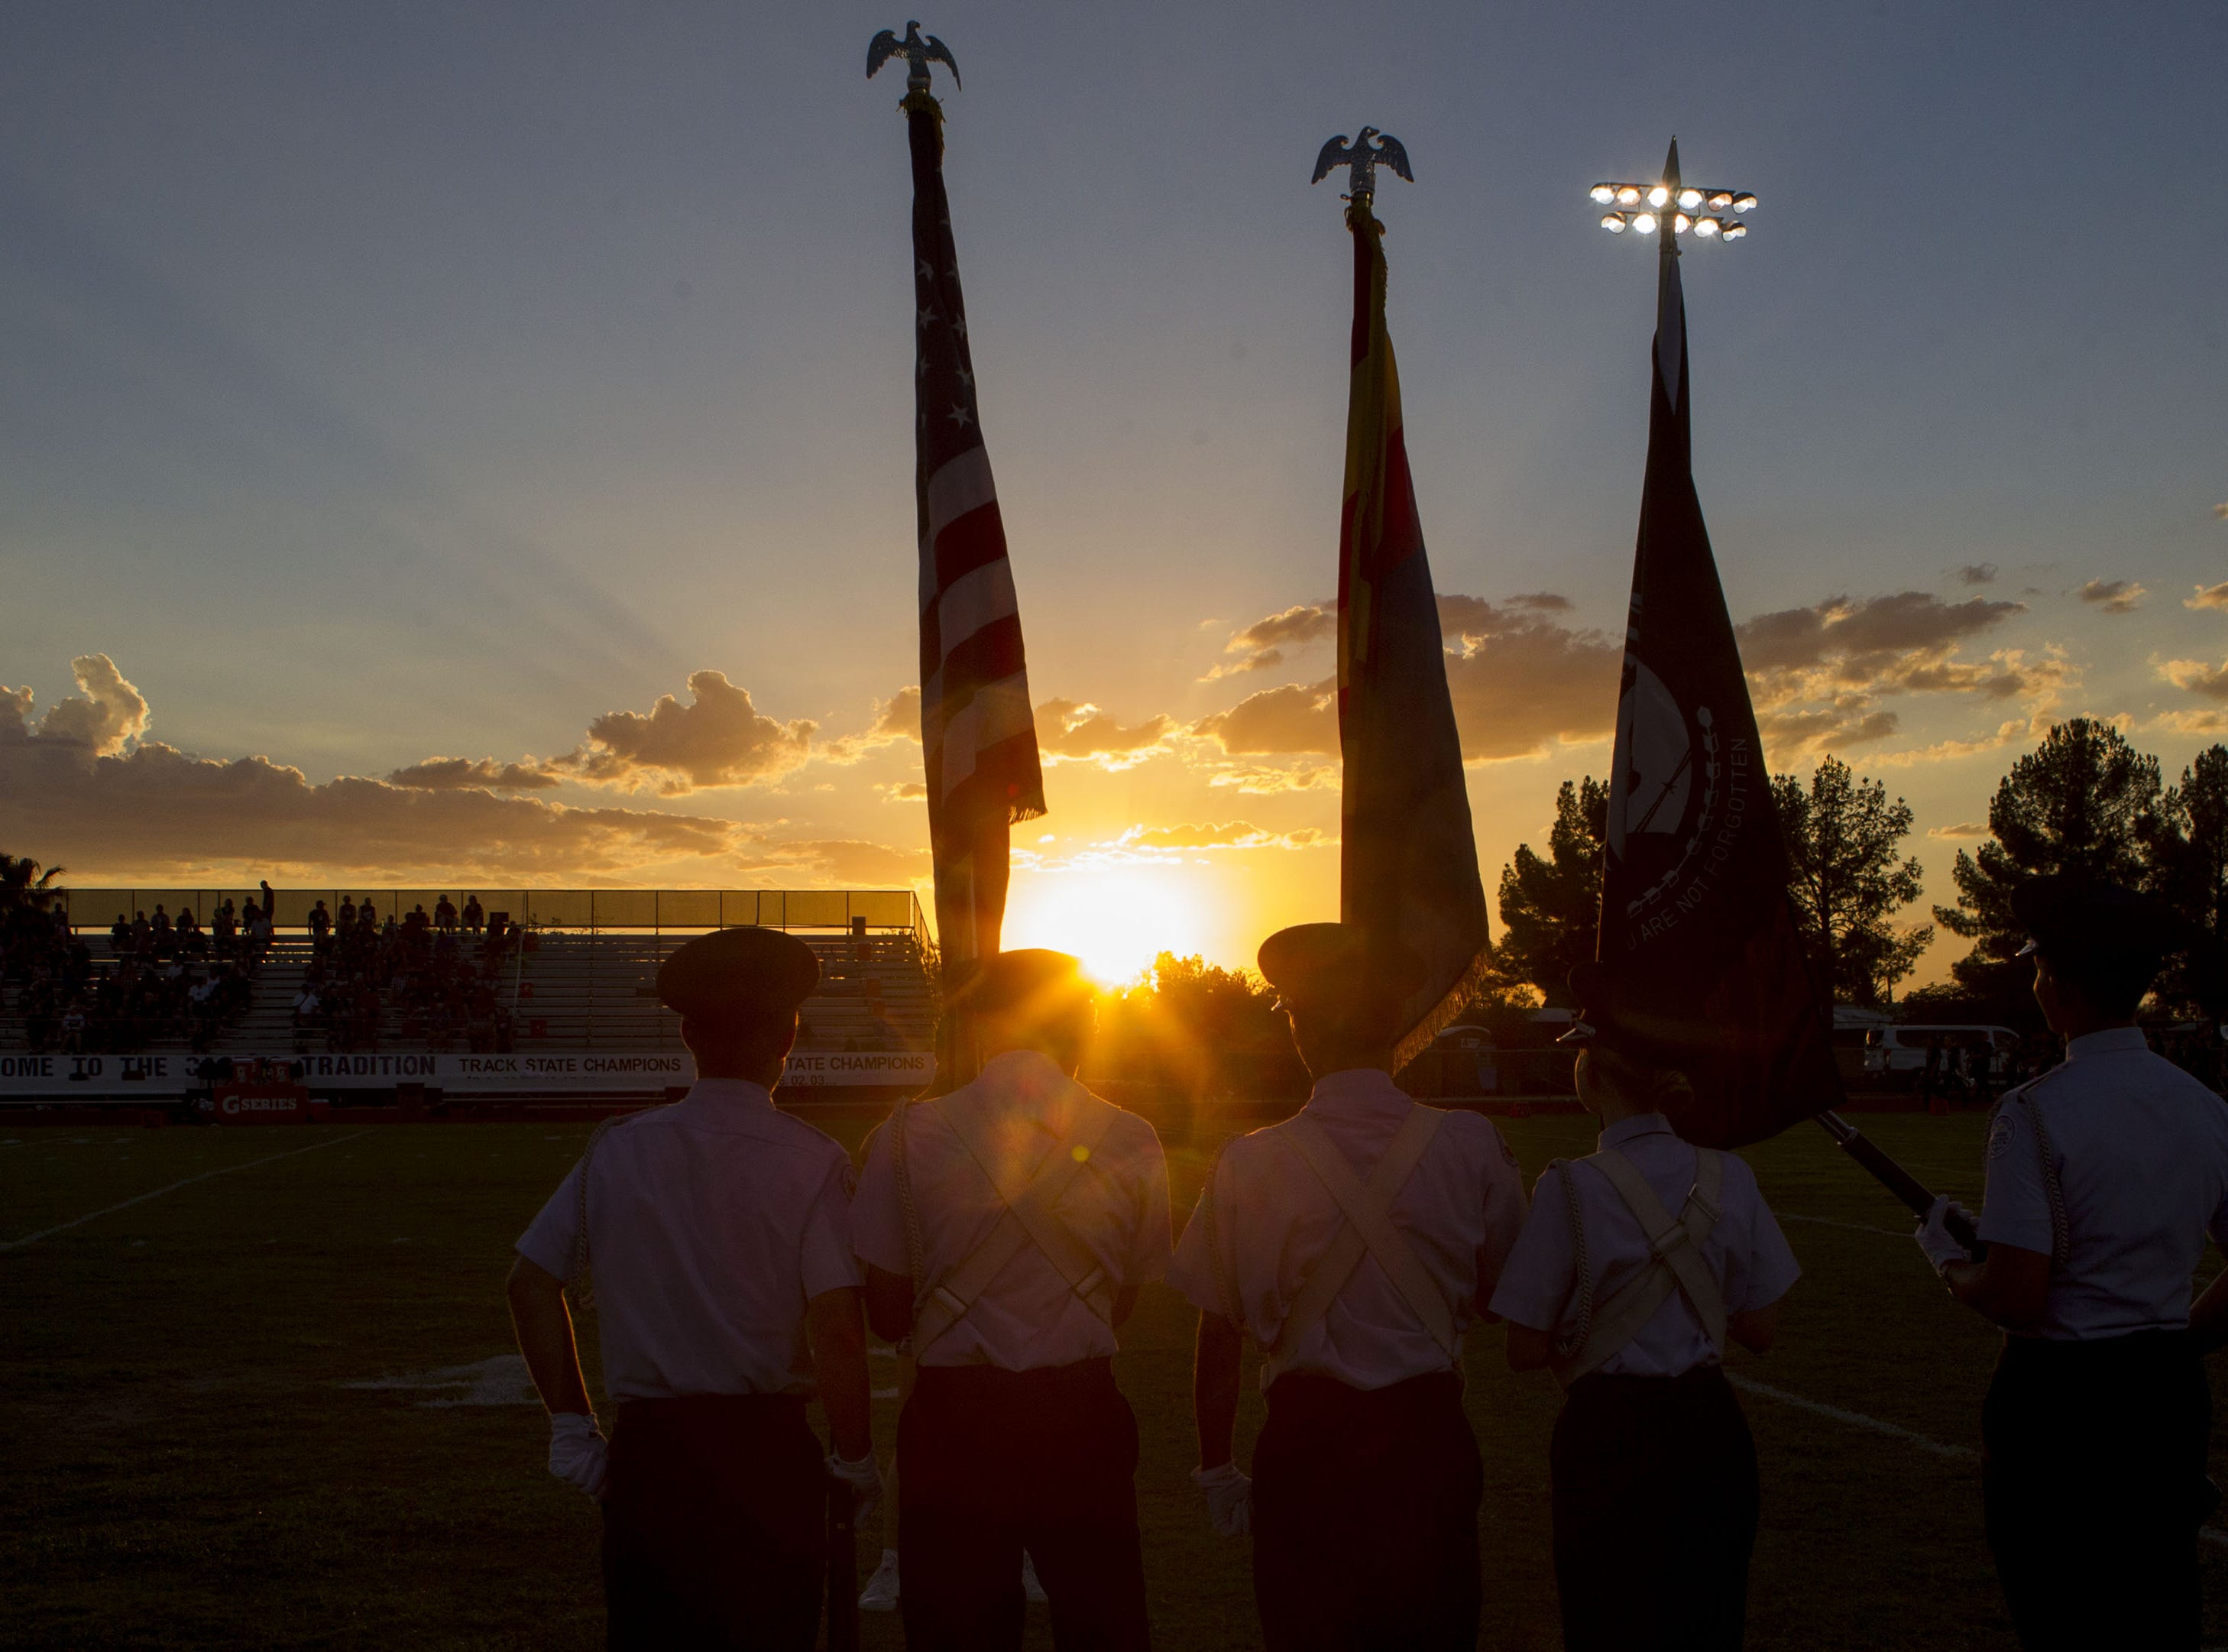 The Cactus High School Color Guard lineup before their game with Ironwood at Cactus High School in Glendale Friday, Aug. 31, 2018.